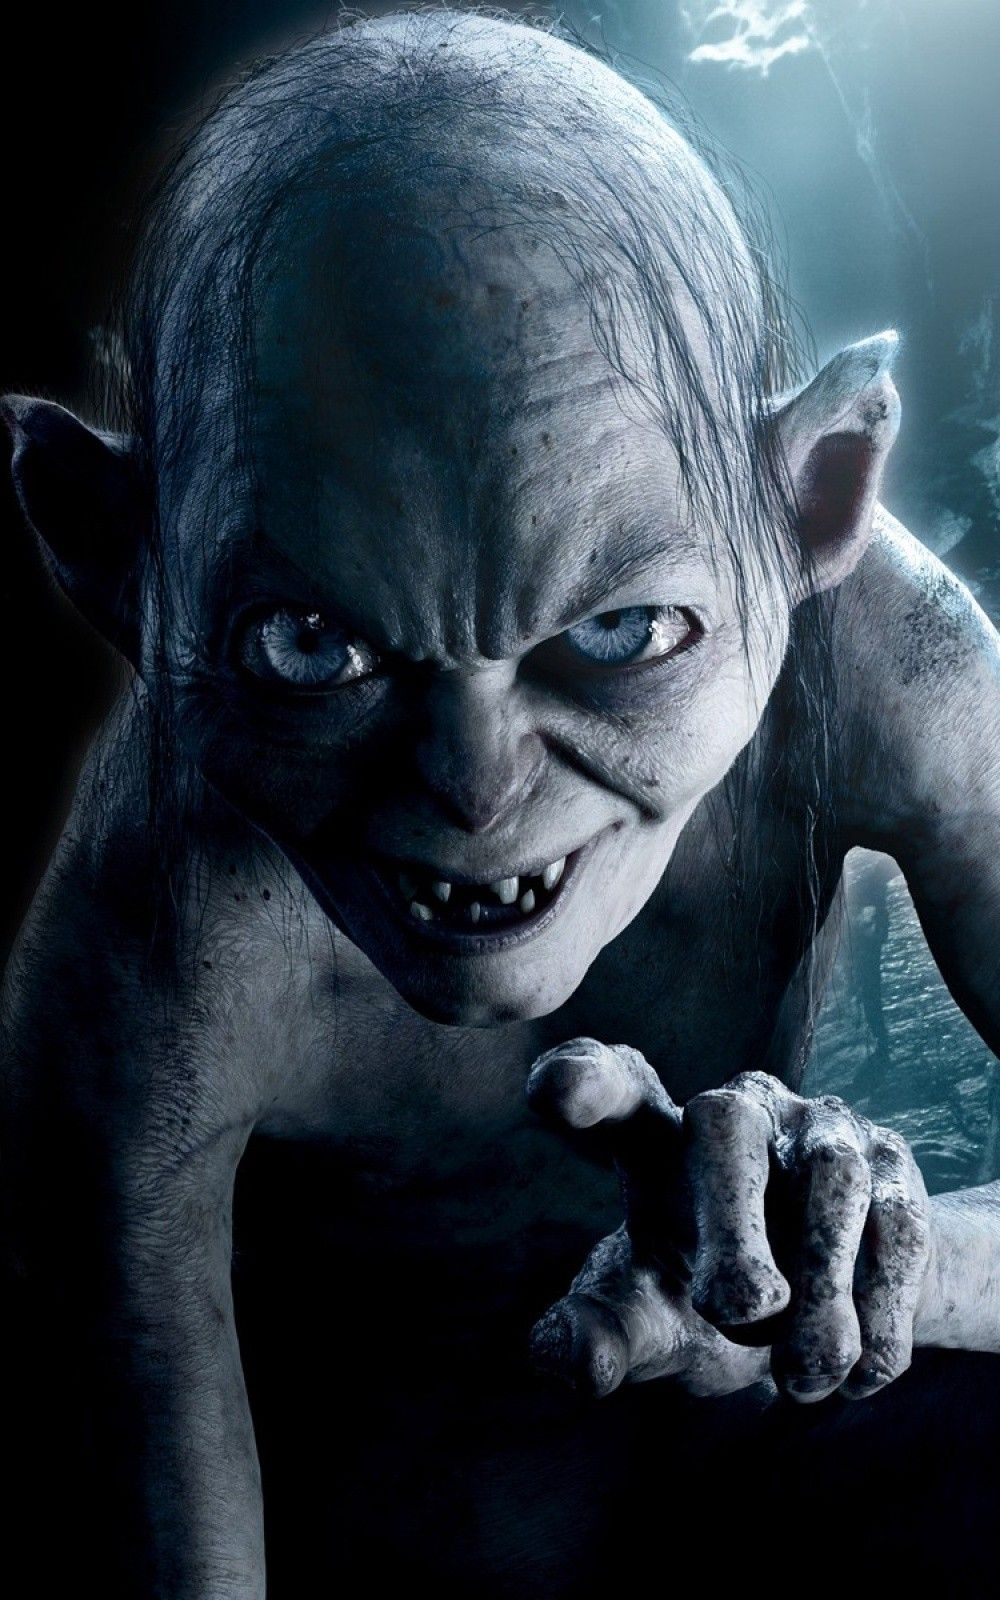 movies iphone 6 plus wallpapers gollum lord of the rings